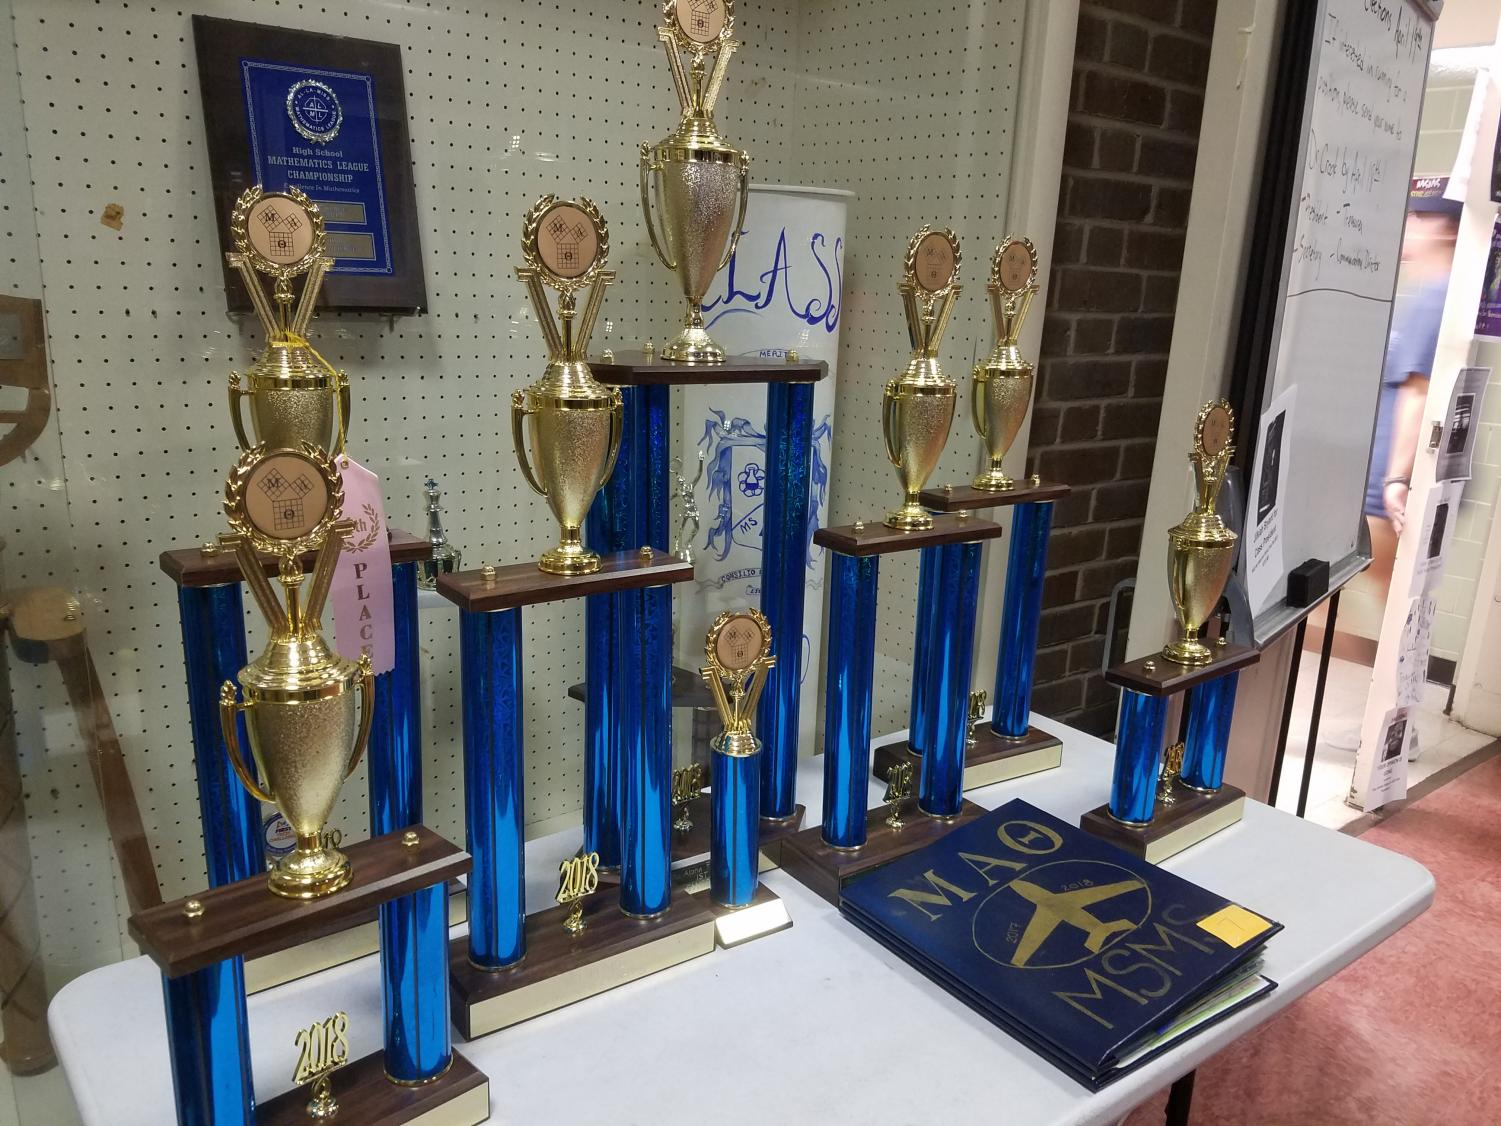 The Mu Alpha Theta team won numerous trophies at the state convention to bring back home.